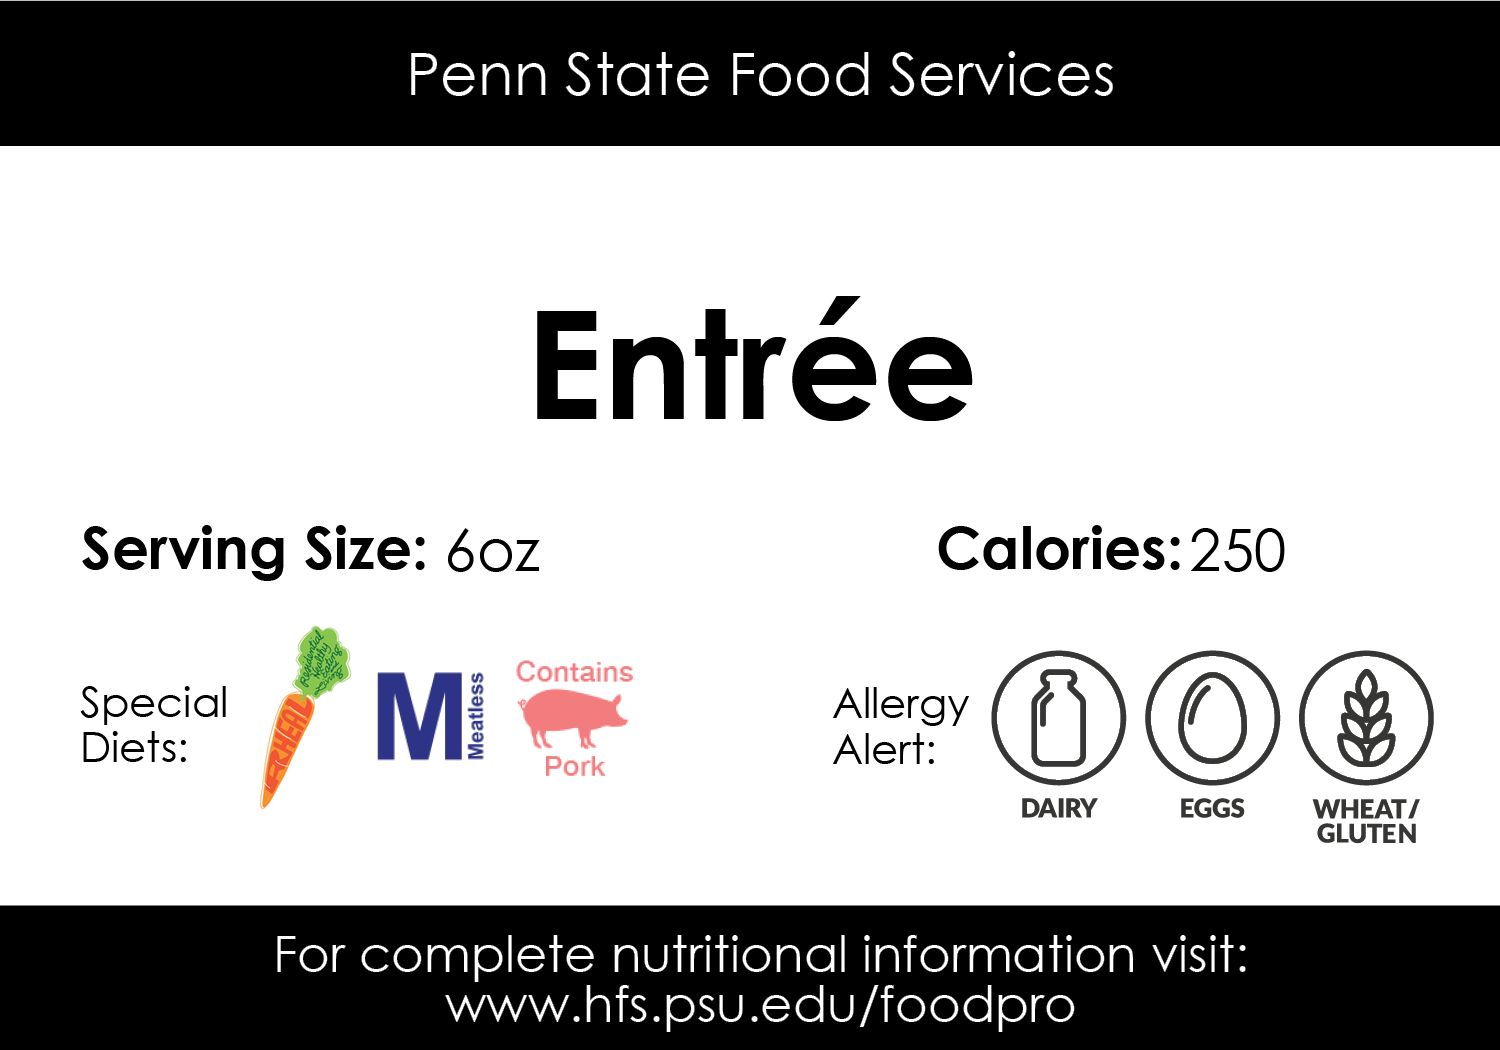 Sample entree card found at Penn State Food Services locations